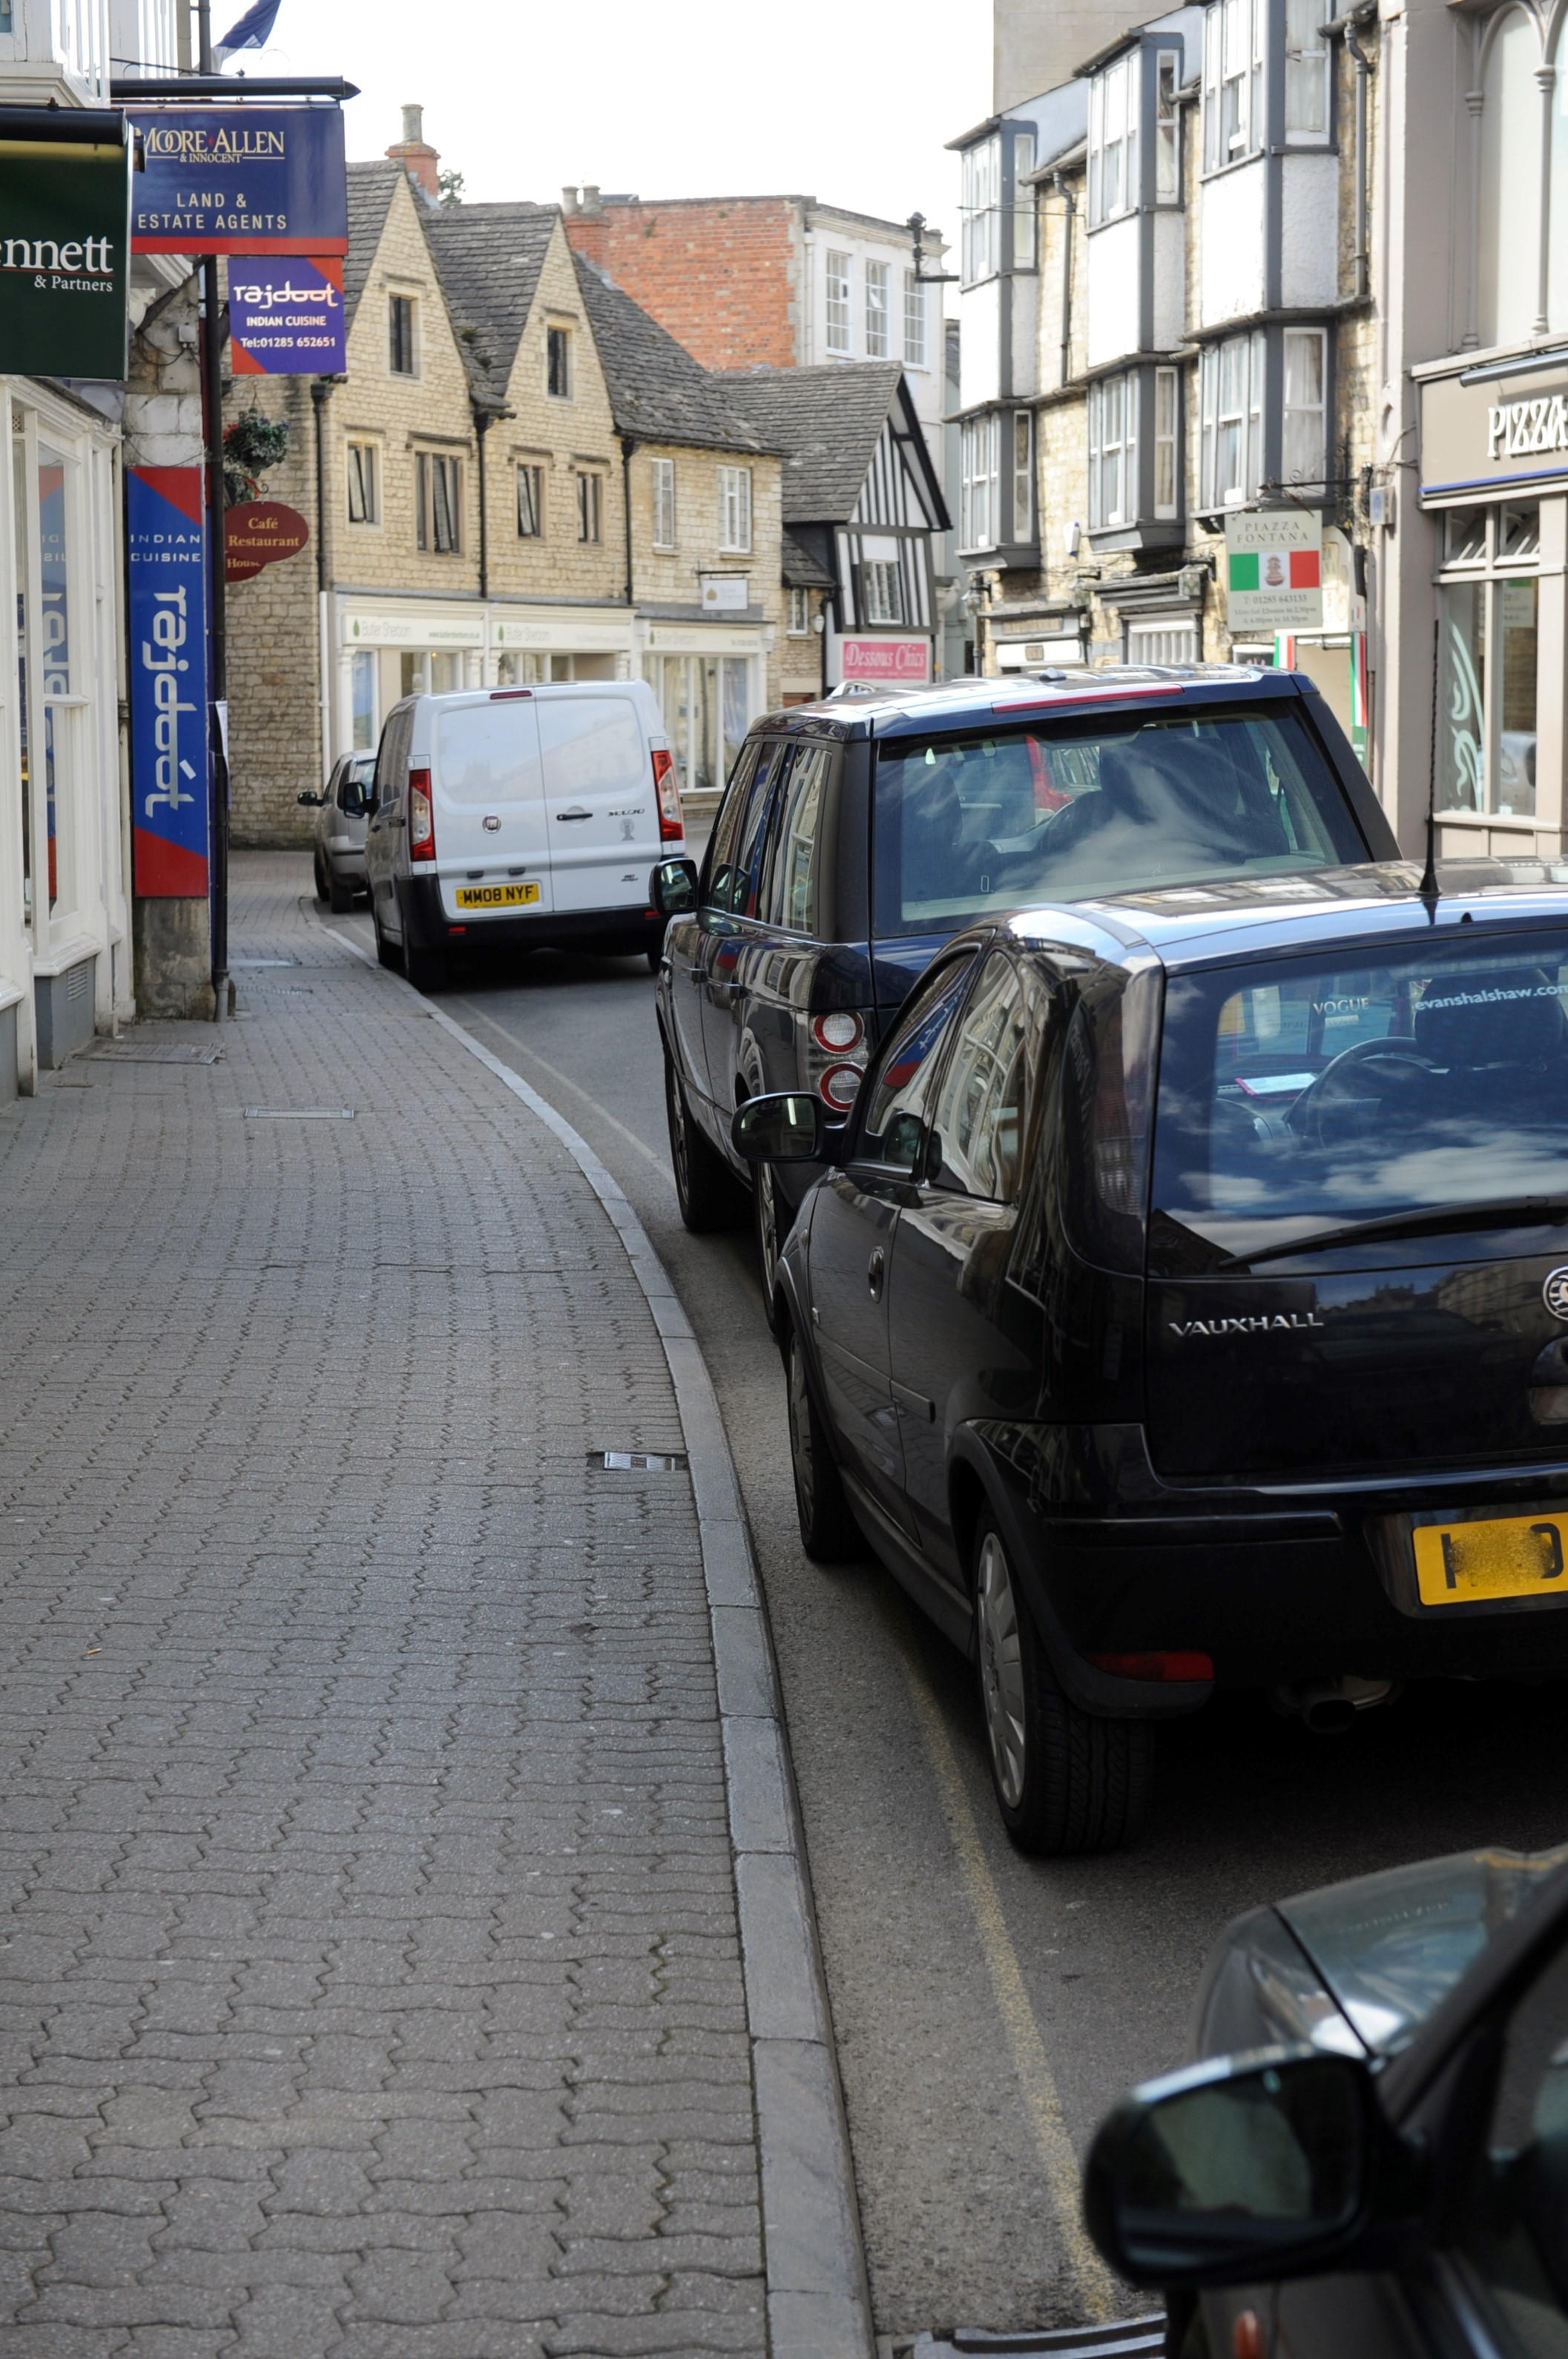 Cirencester parking consultation is being used as